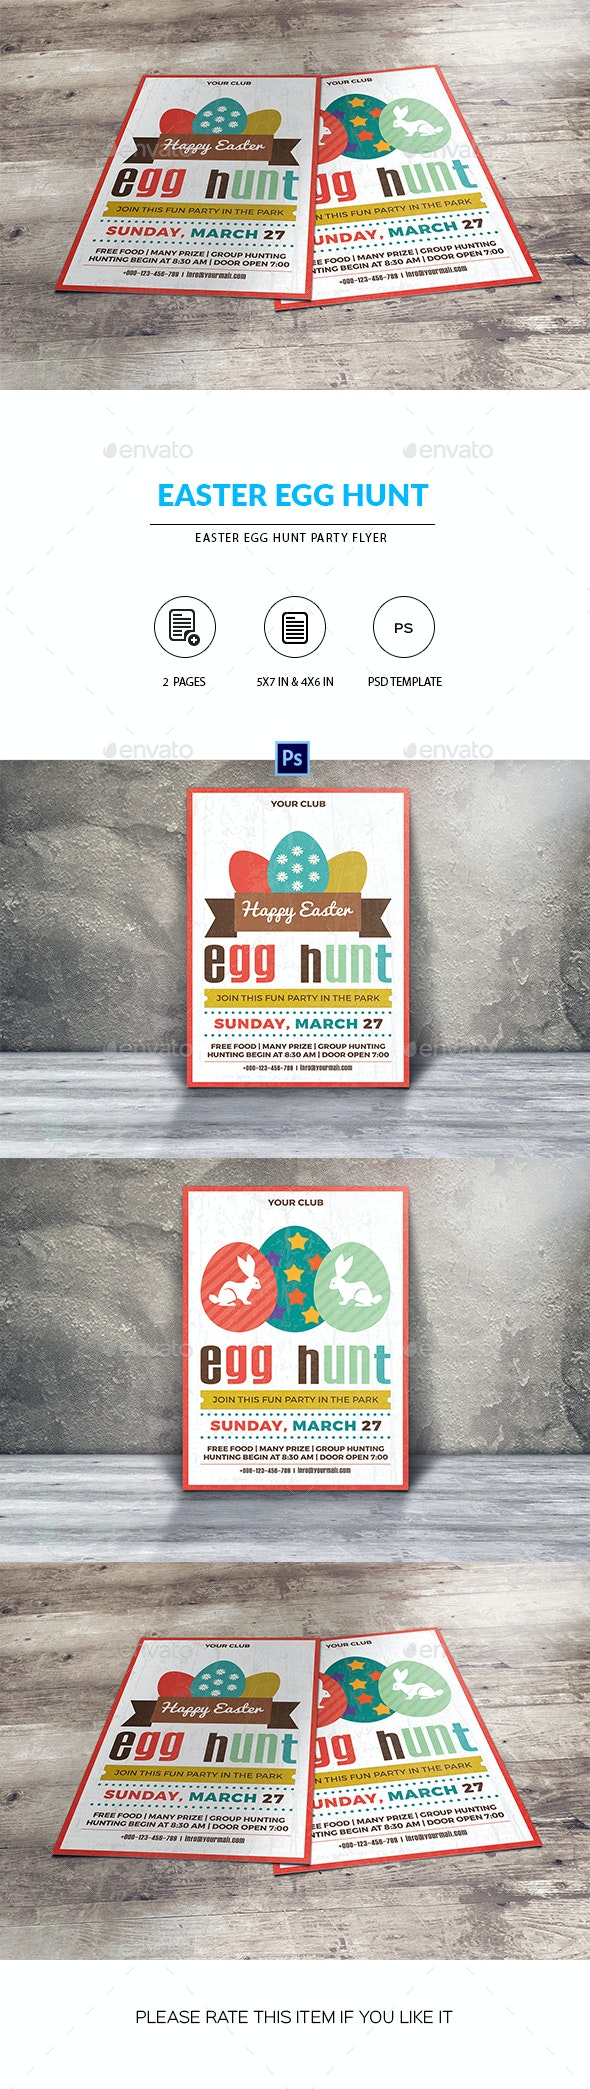 Easter Egg Hunt Party Flyer/Invitation Template - Clubs & Parties Events